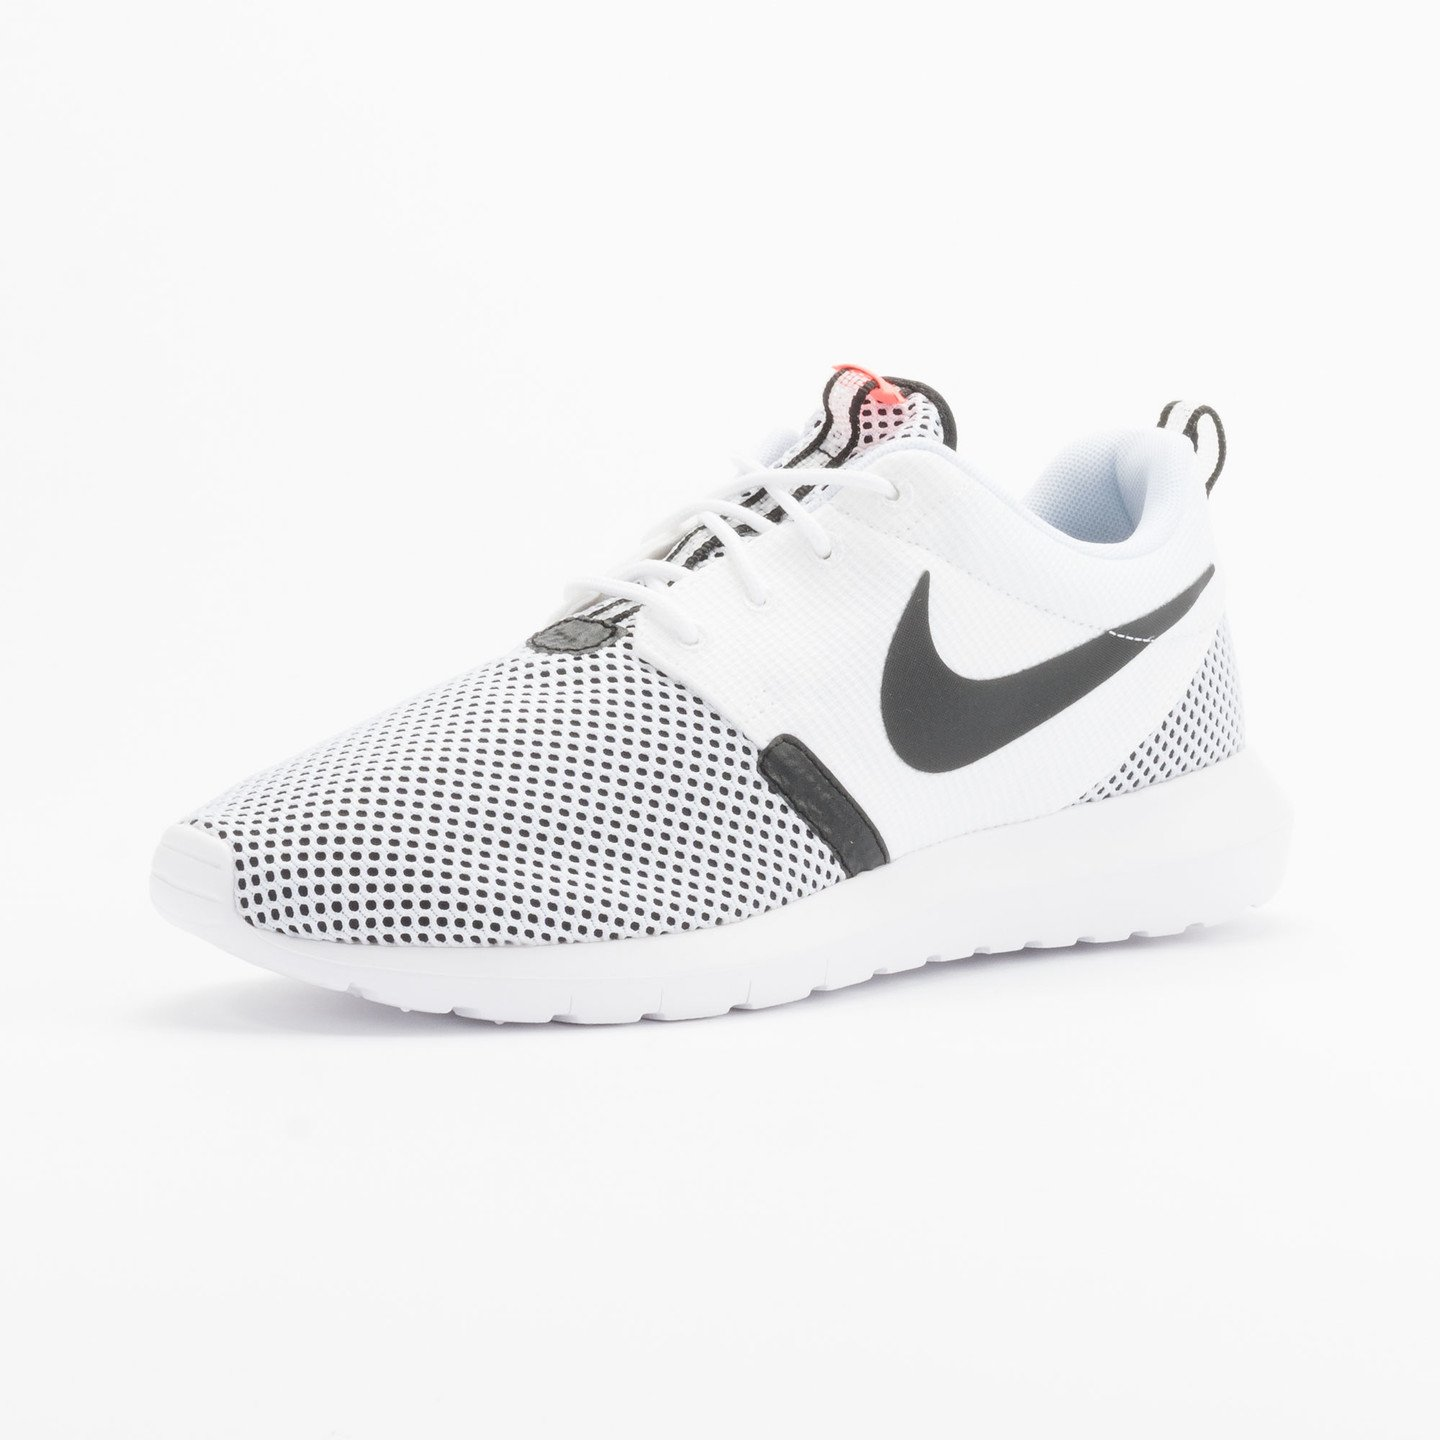 Nike Rosherun NM BR White/White-Black-Hot Lava 644425-100-46